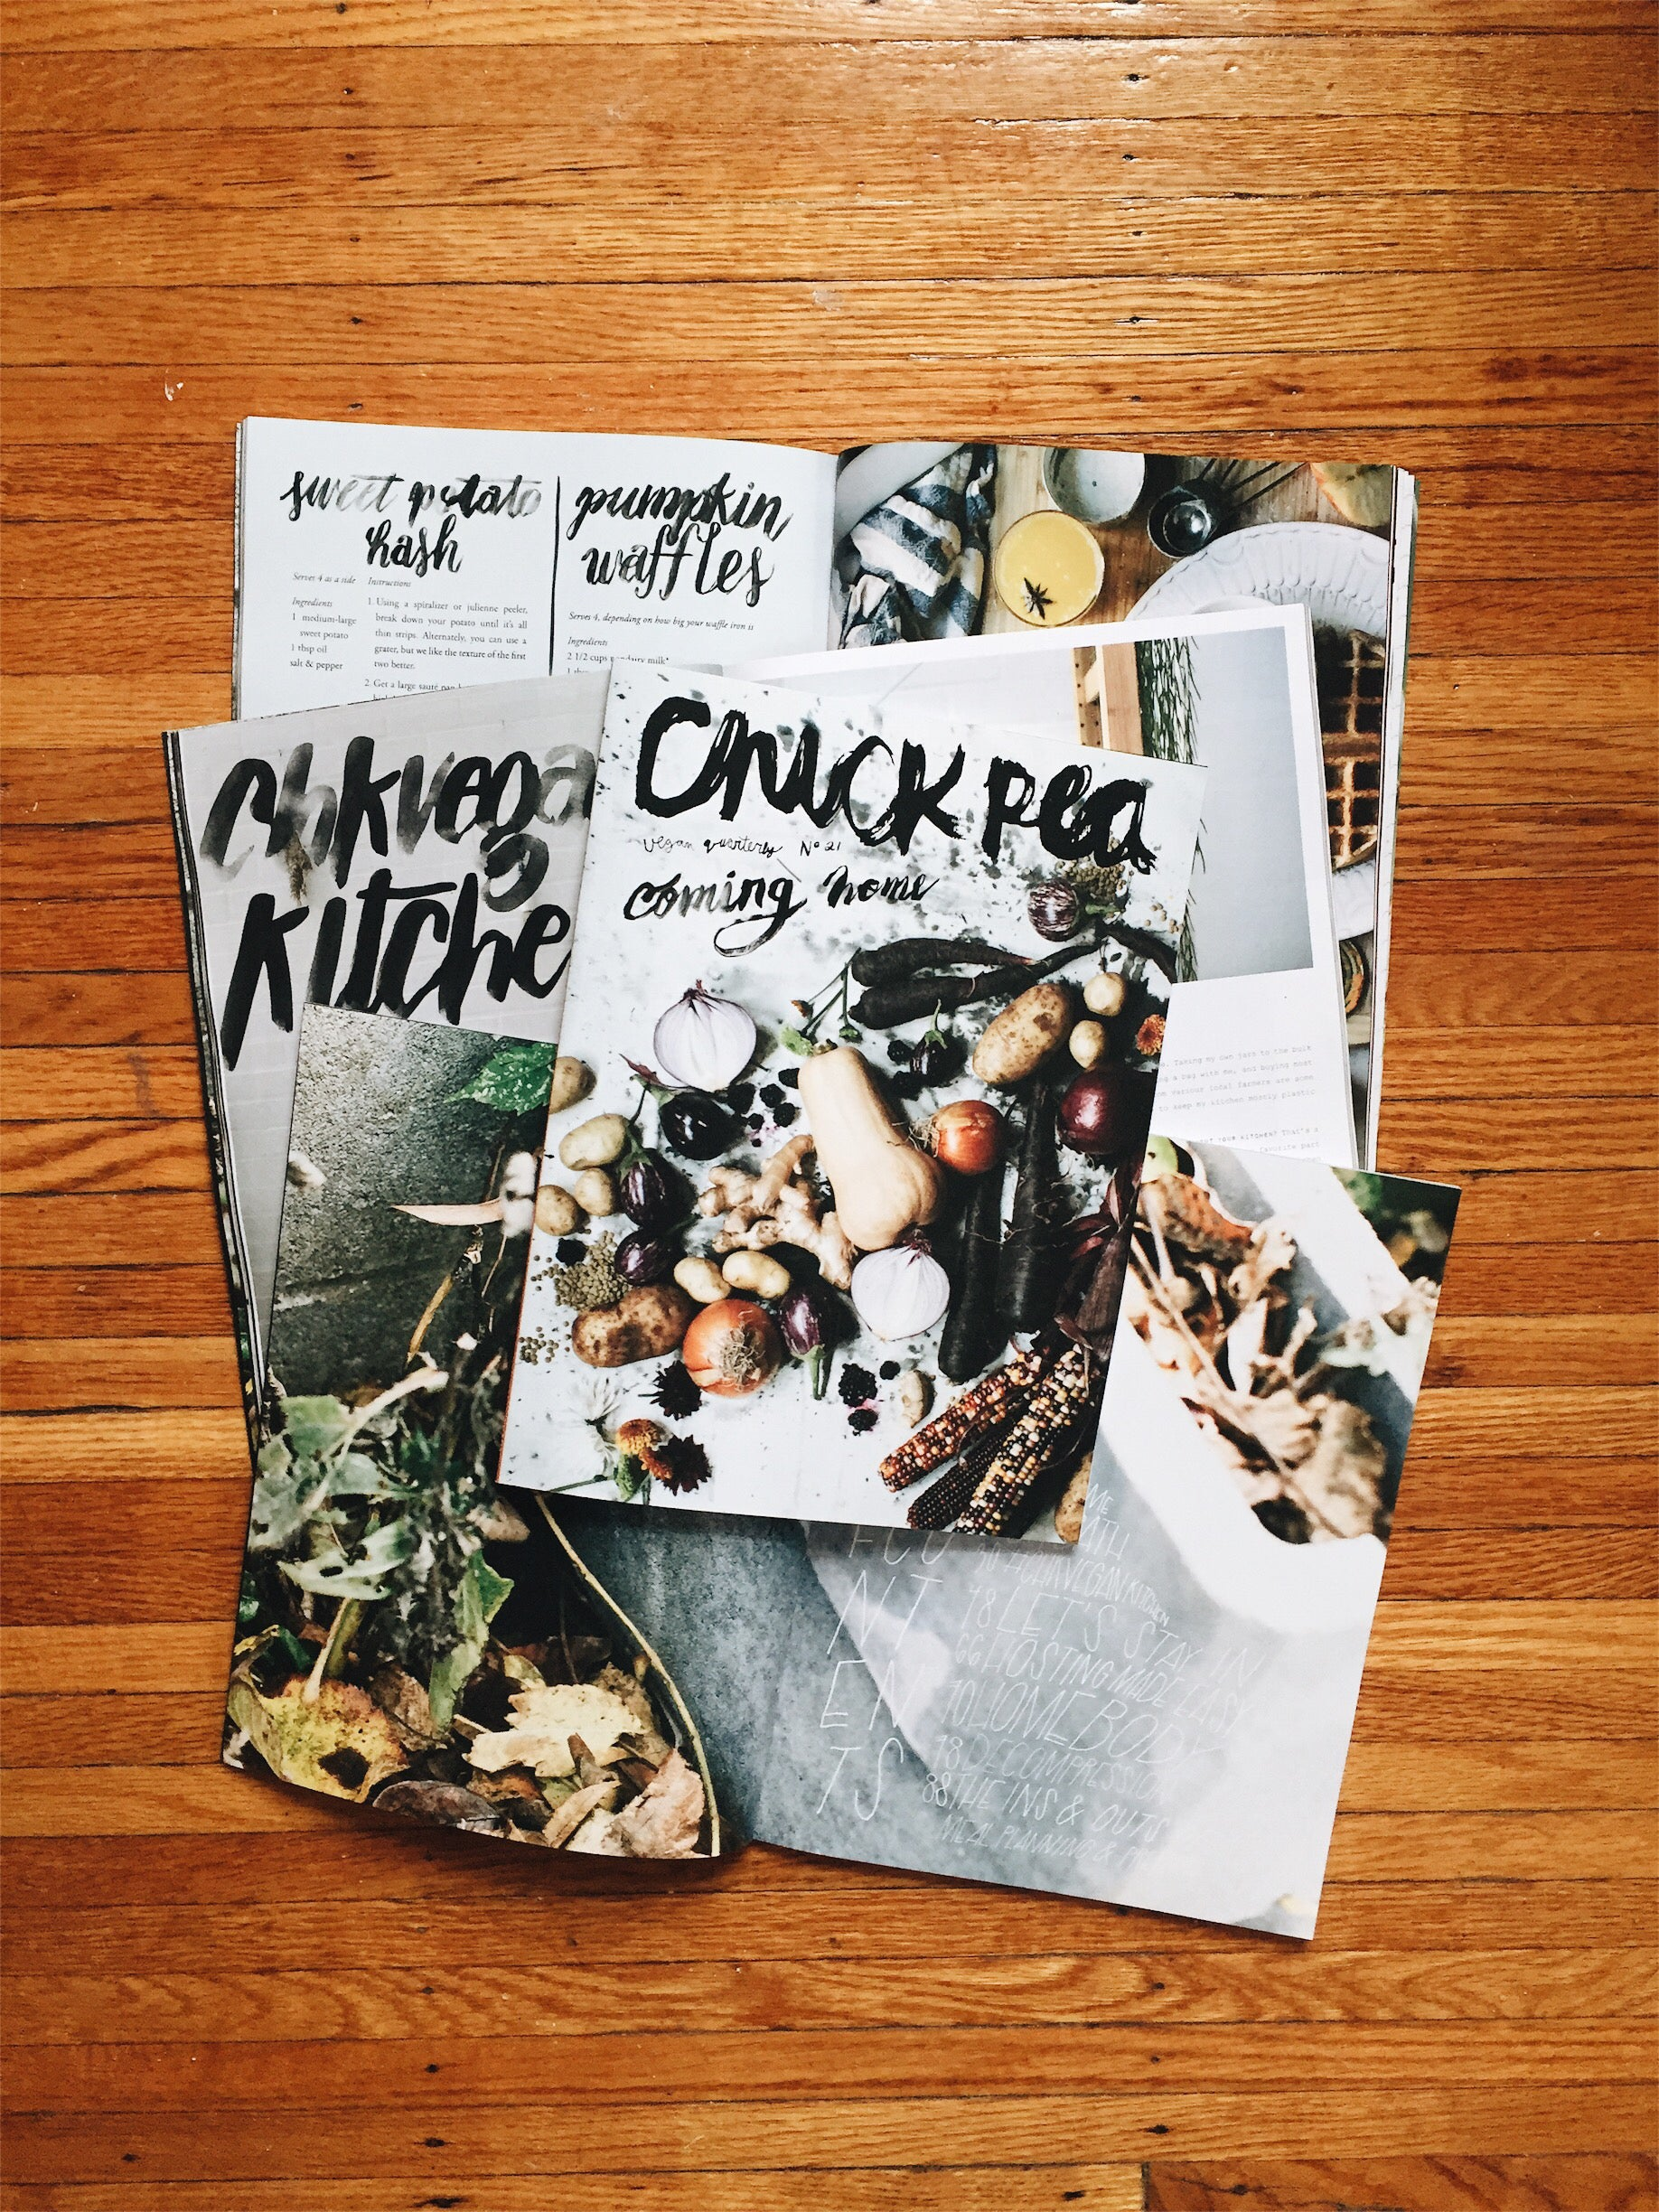 chickpea mag #21: coming home